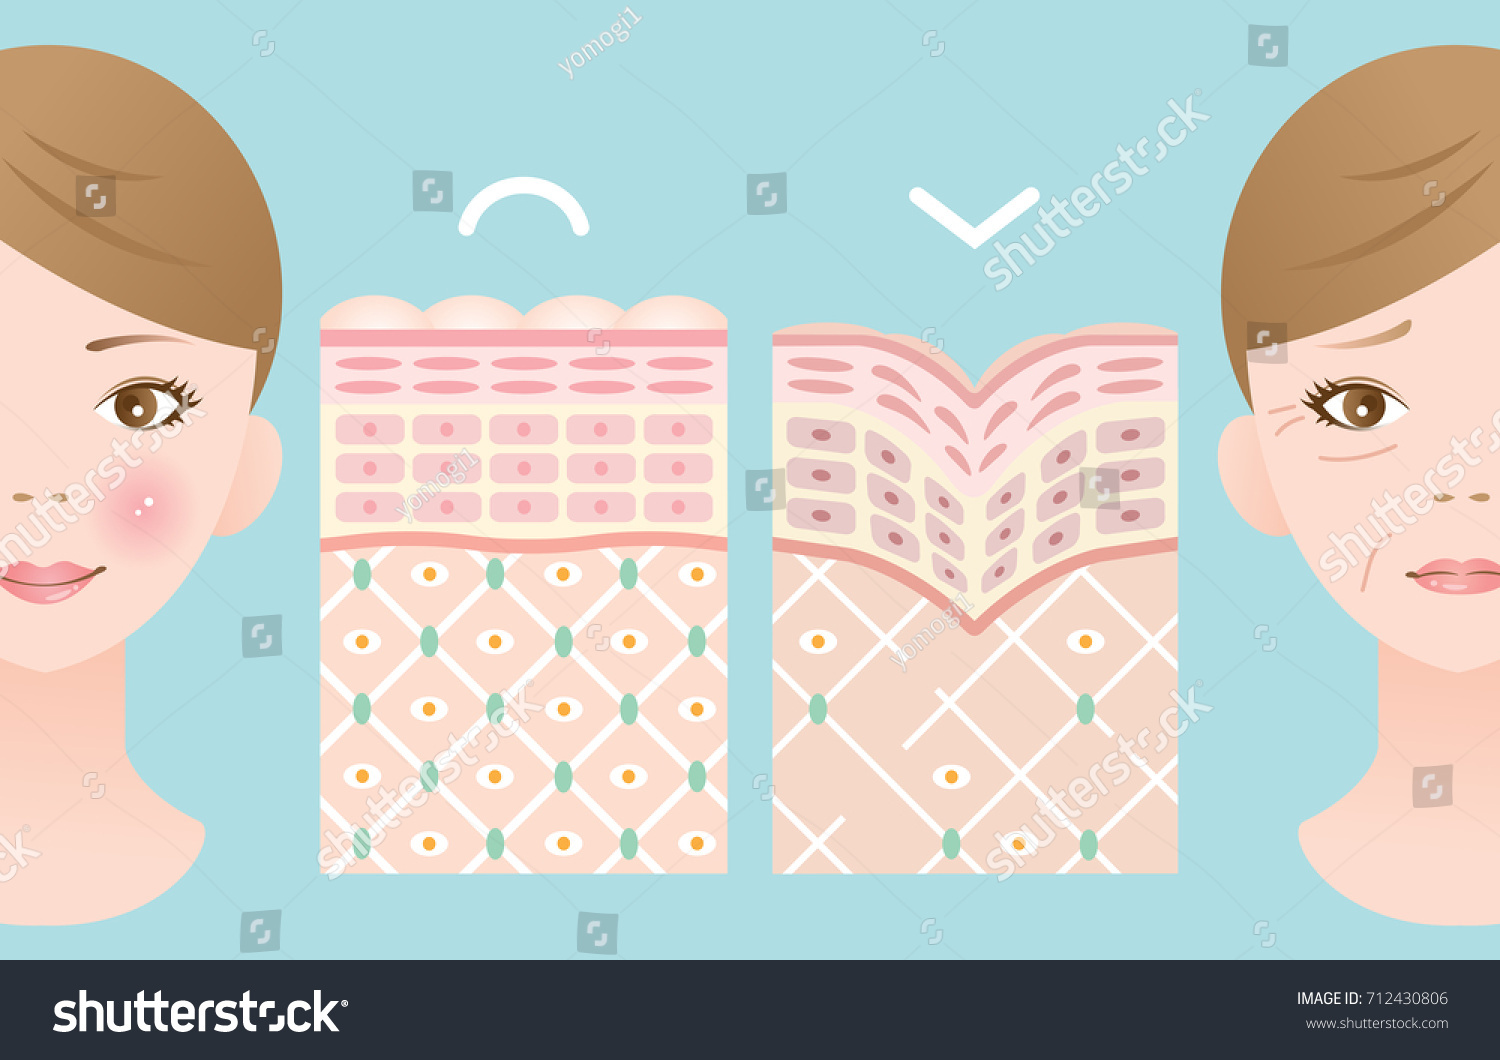 diagram young old skin woman face stock vector (royalty free Epidermis Diagram diagram of young and old skin woman face with winkles and no winkle